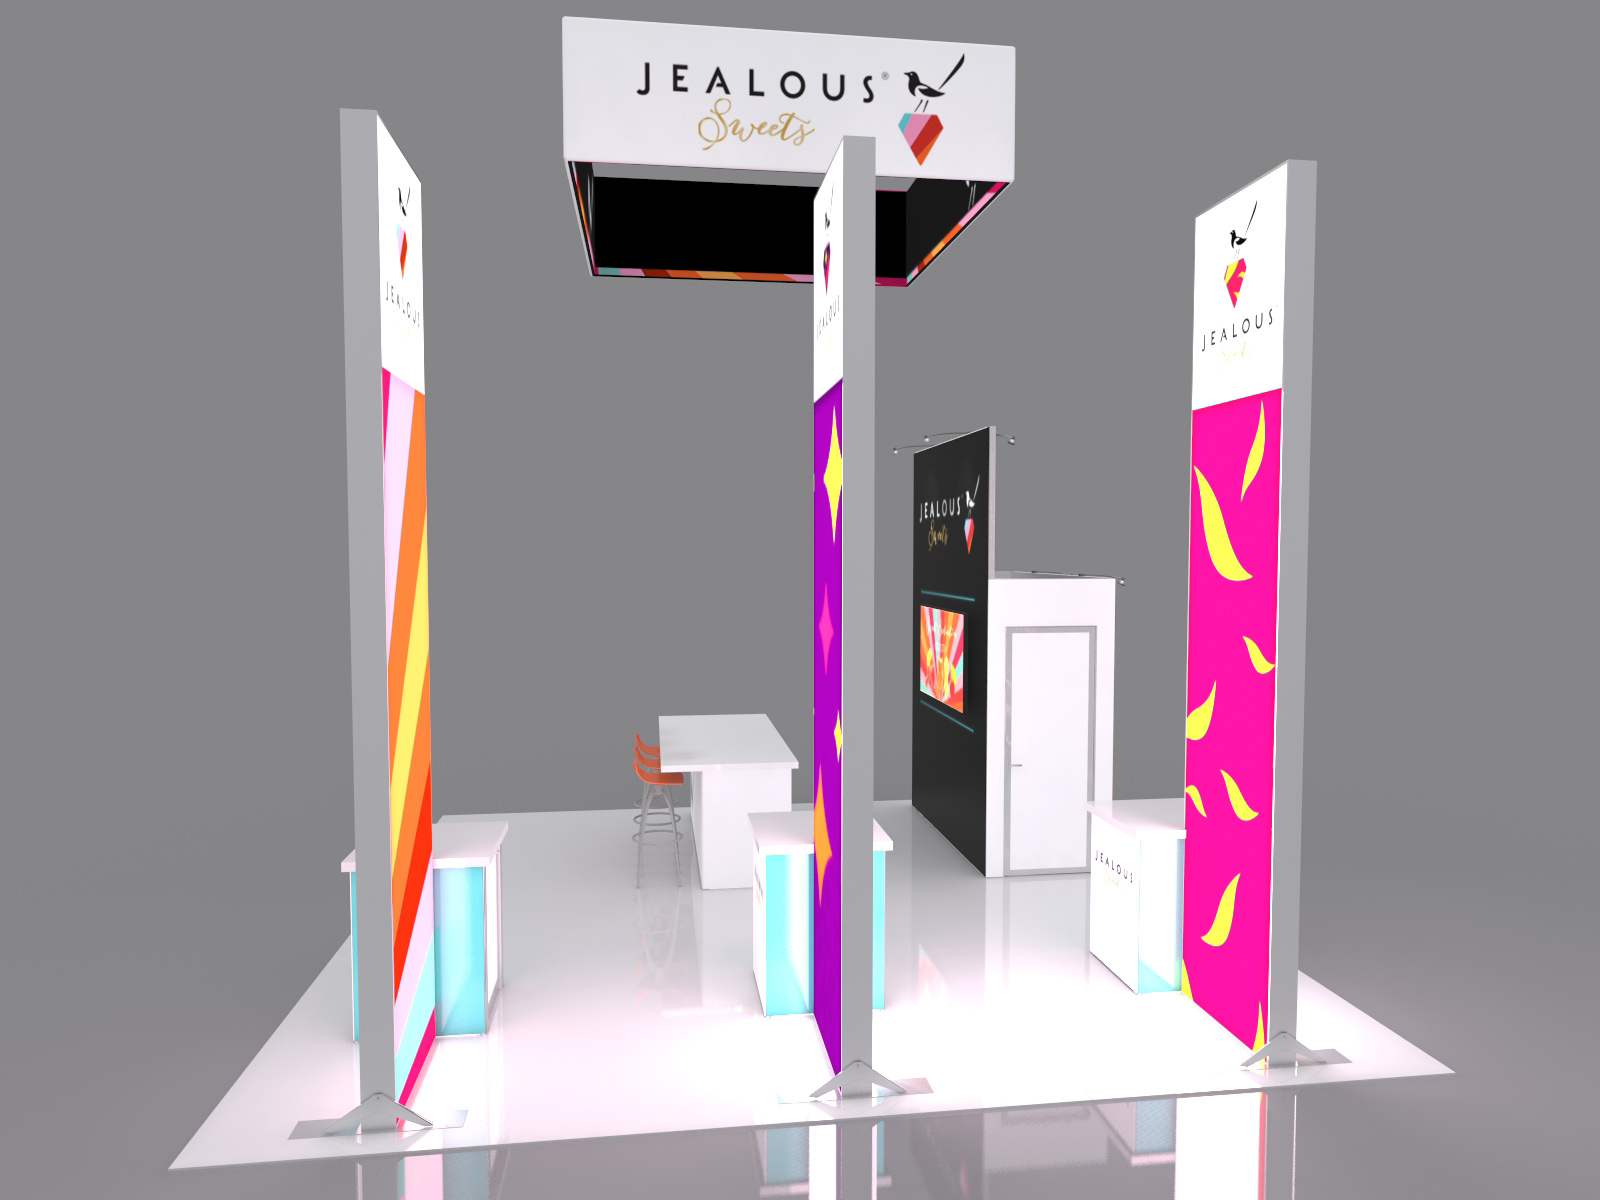 20x20-trade-show-booth-rental-4